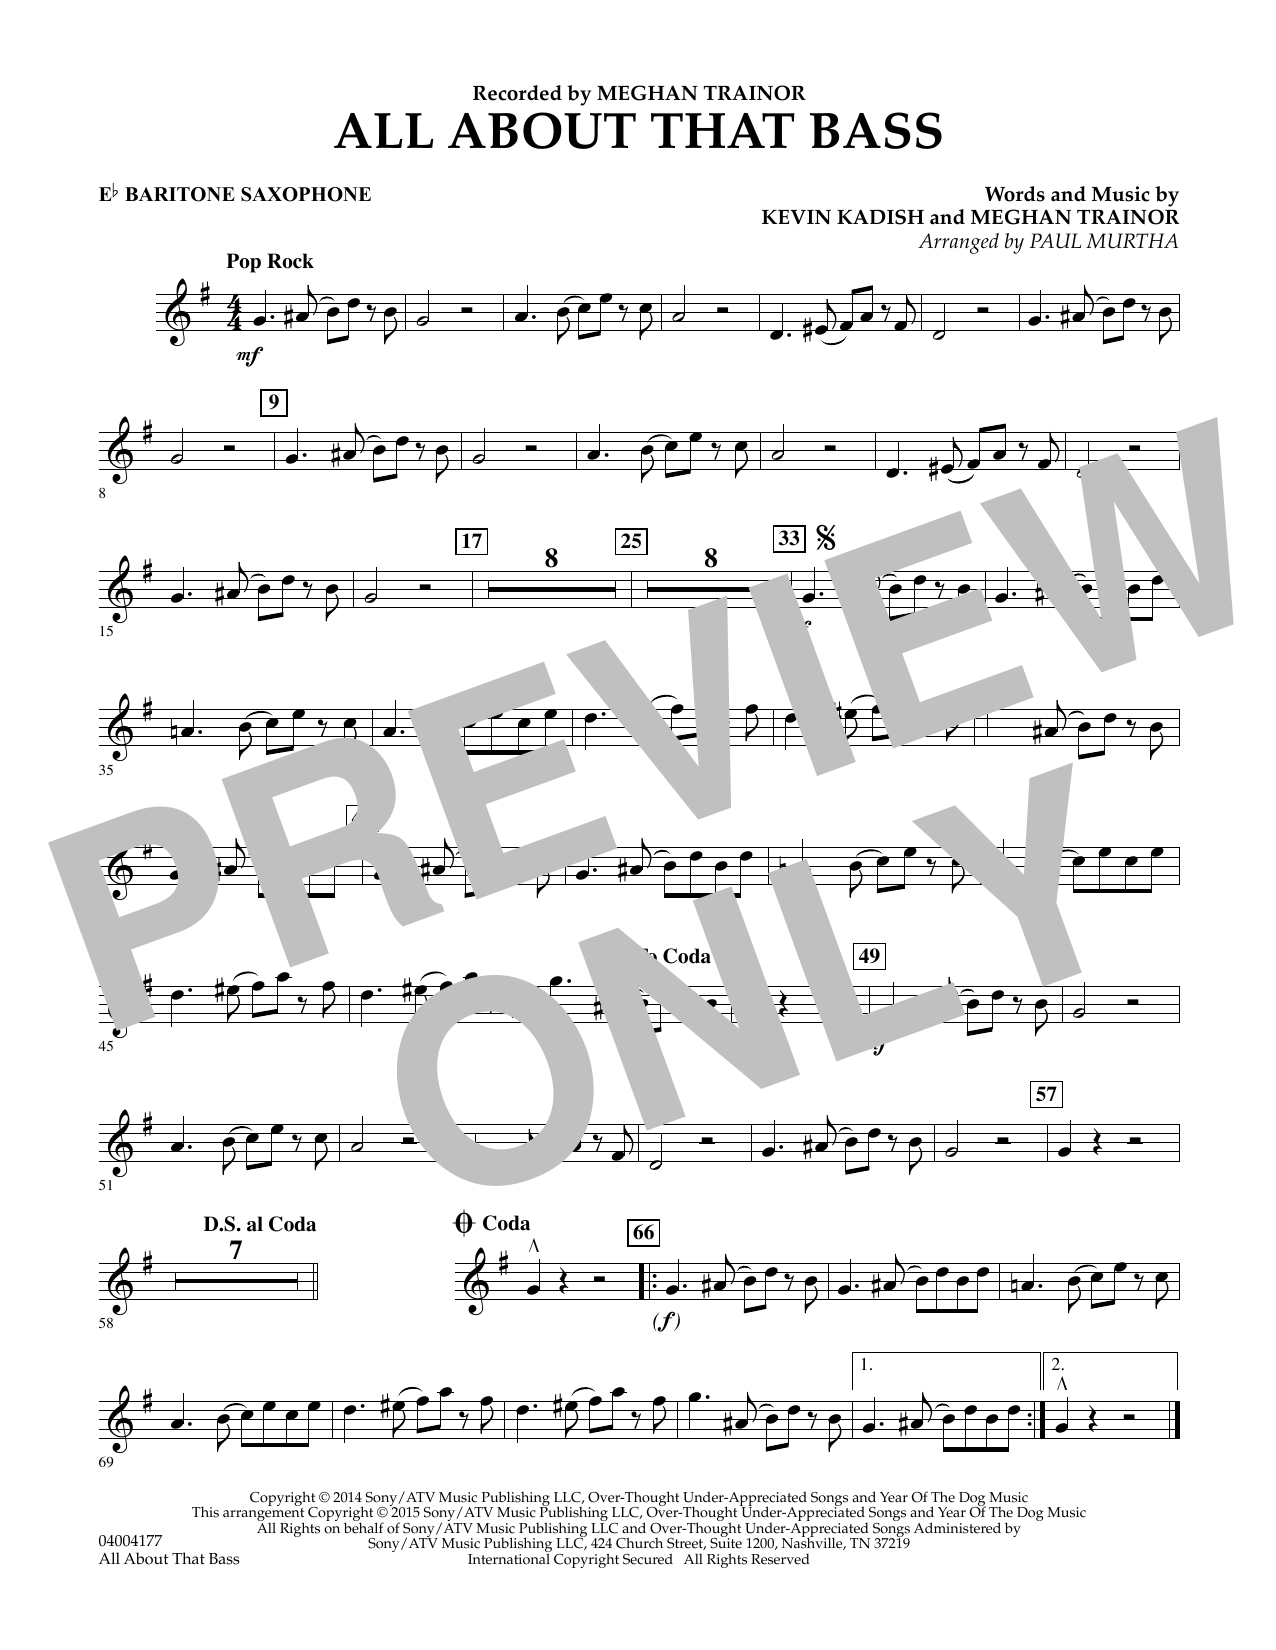 Paul Murtha All About That Bass - Eb Baritone Saxophone sheet music notes and chords. Download Printable PDF.